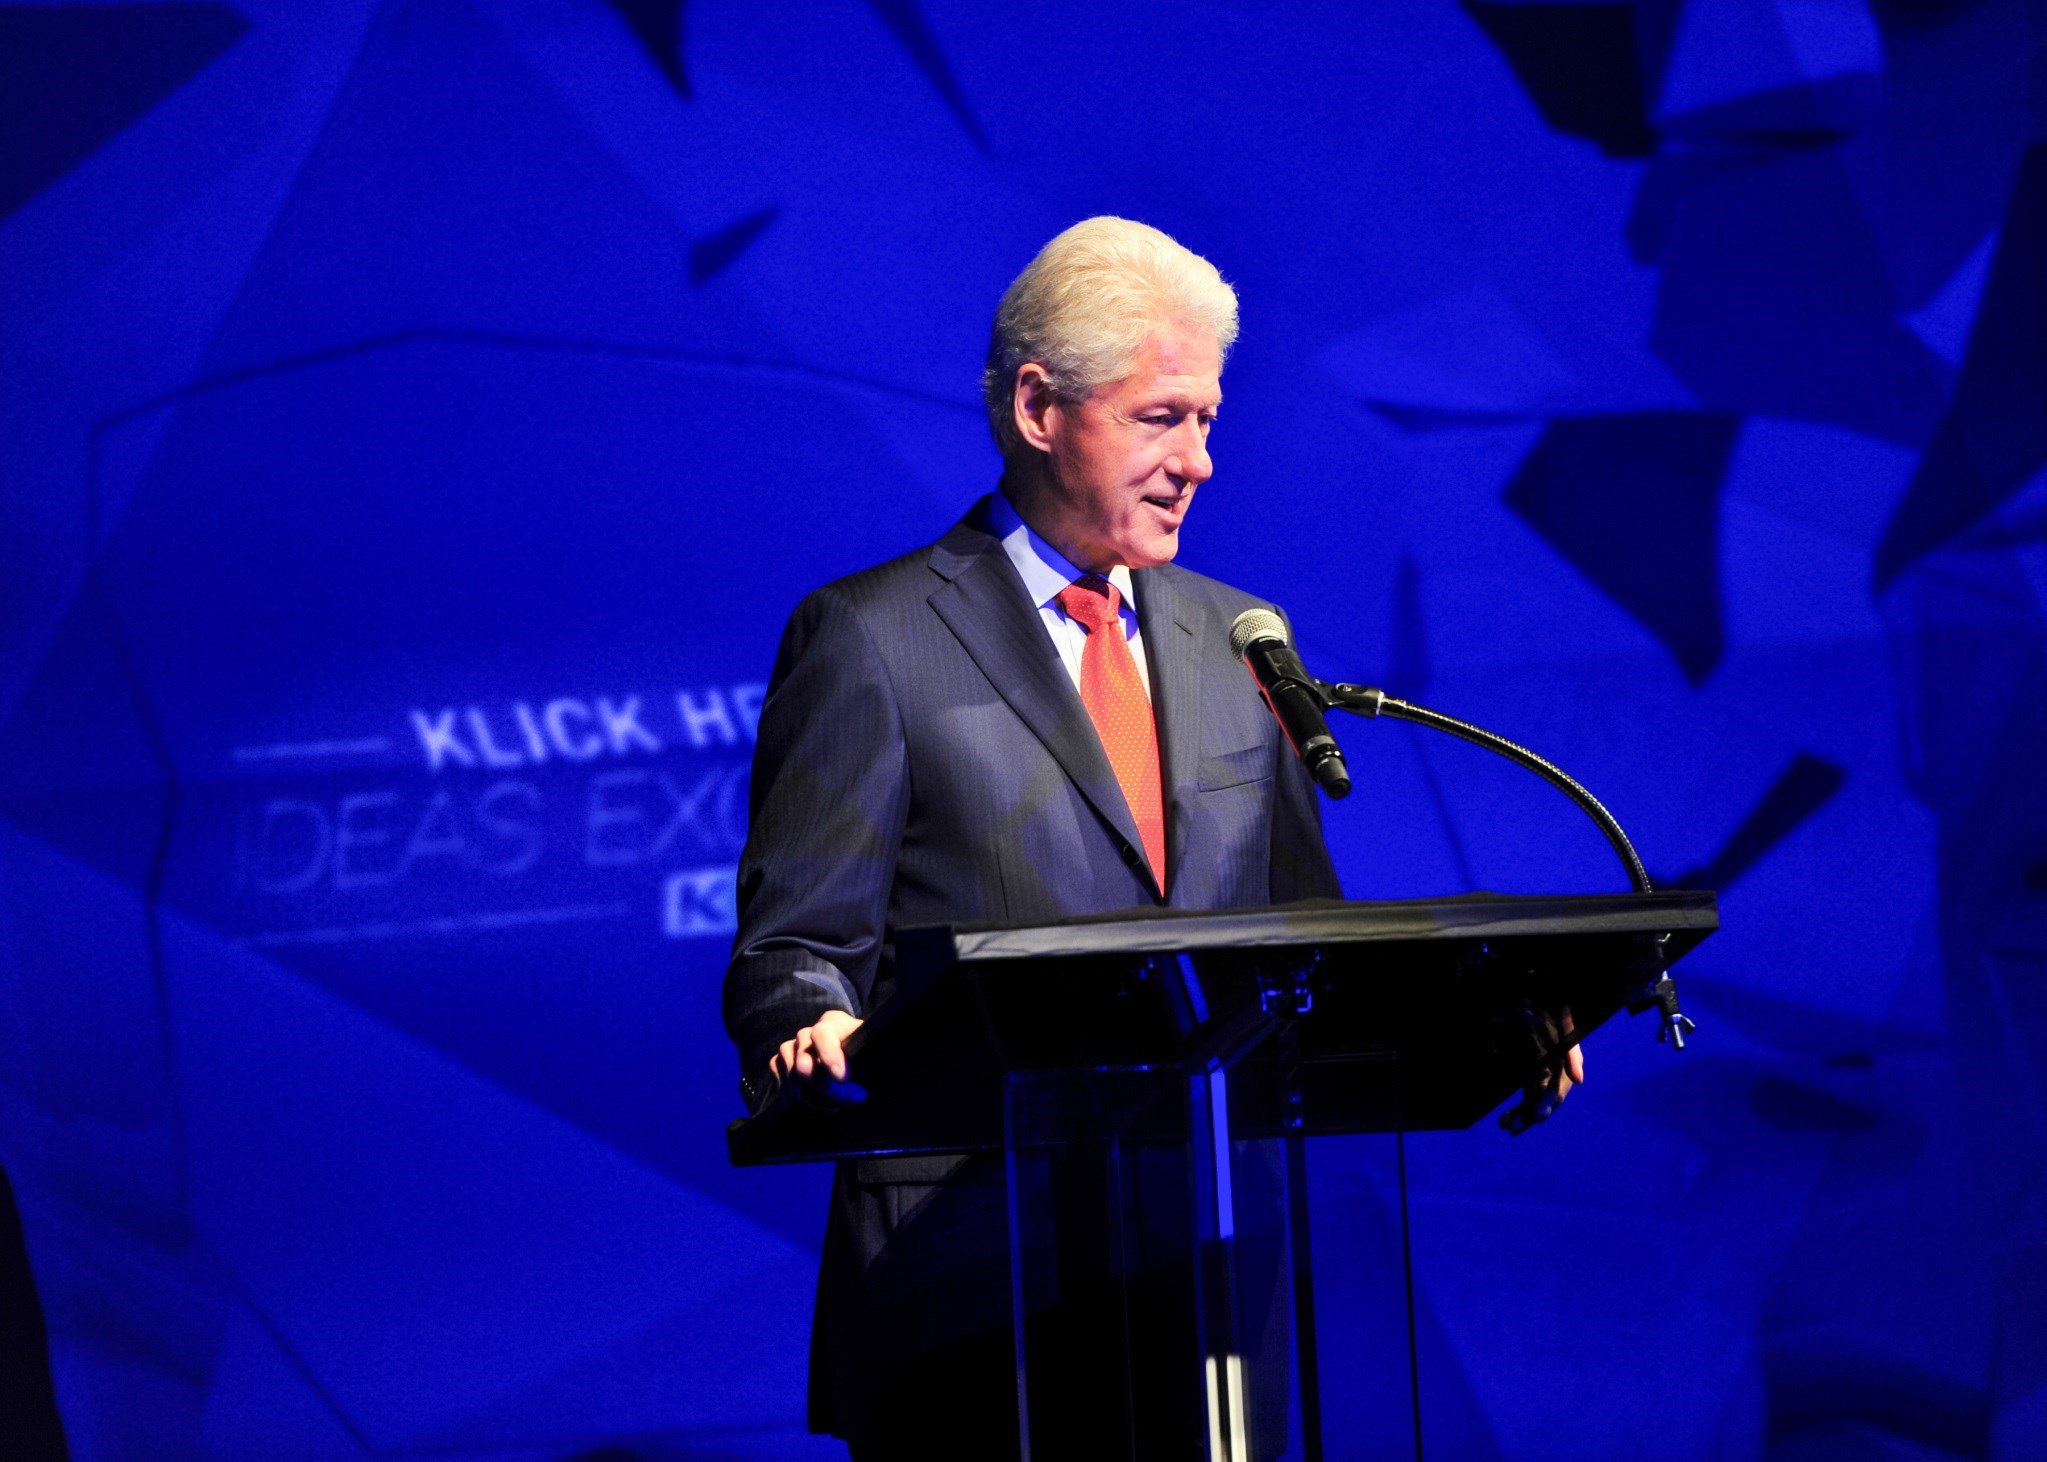 Bill Clinton spoke at the Klick Ideas Exchange.